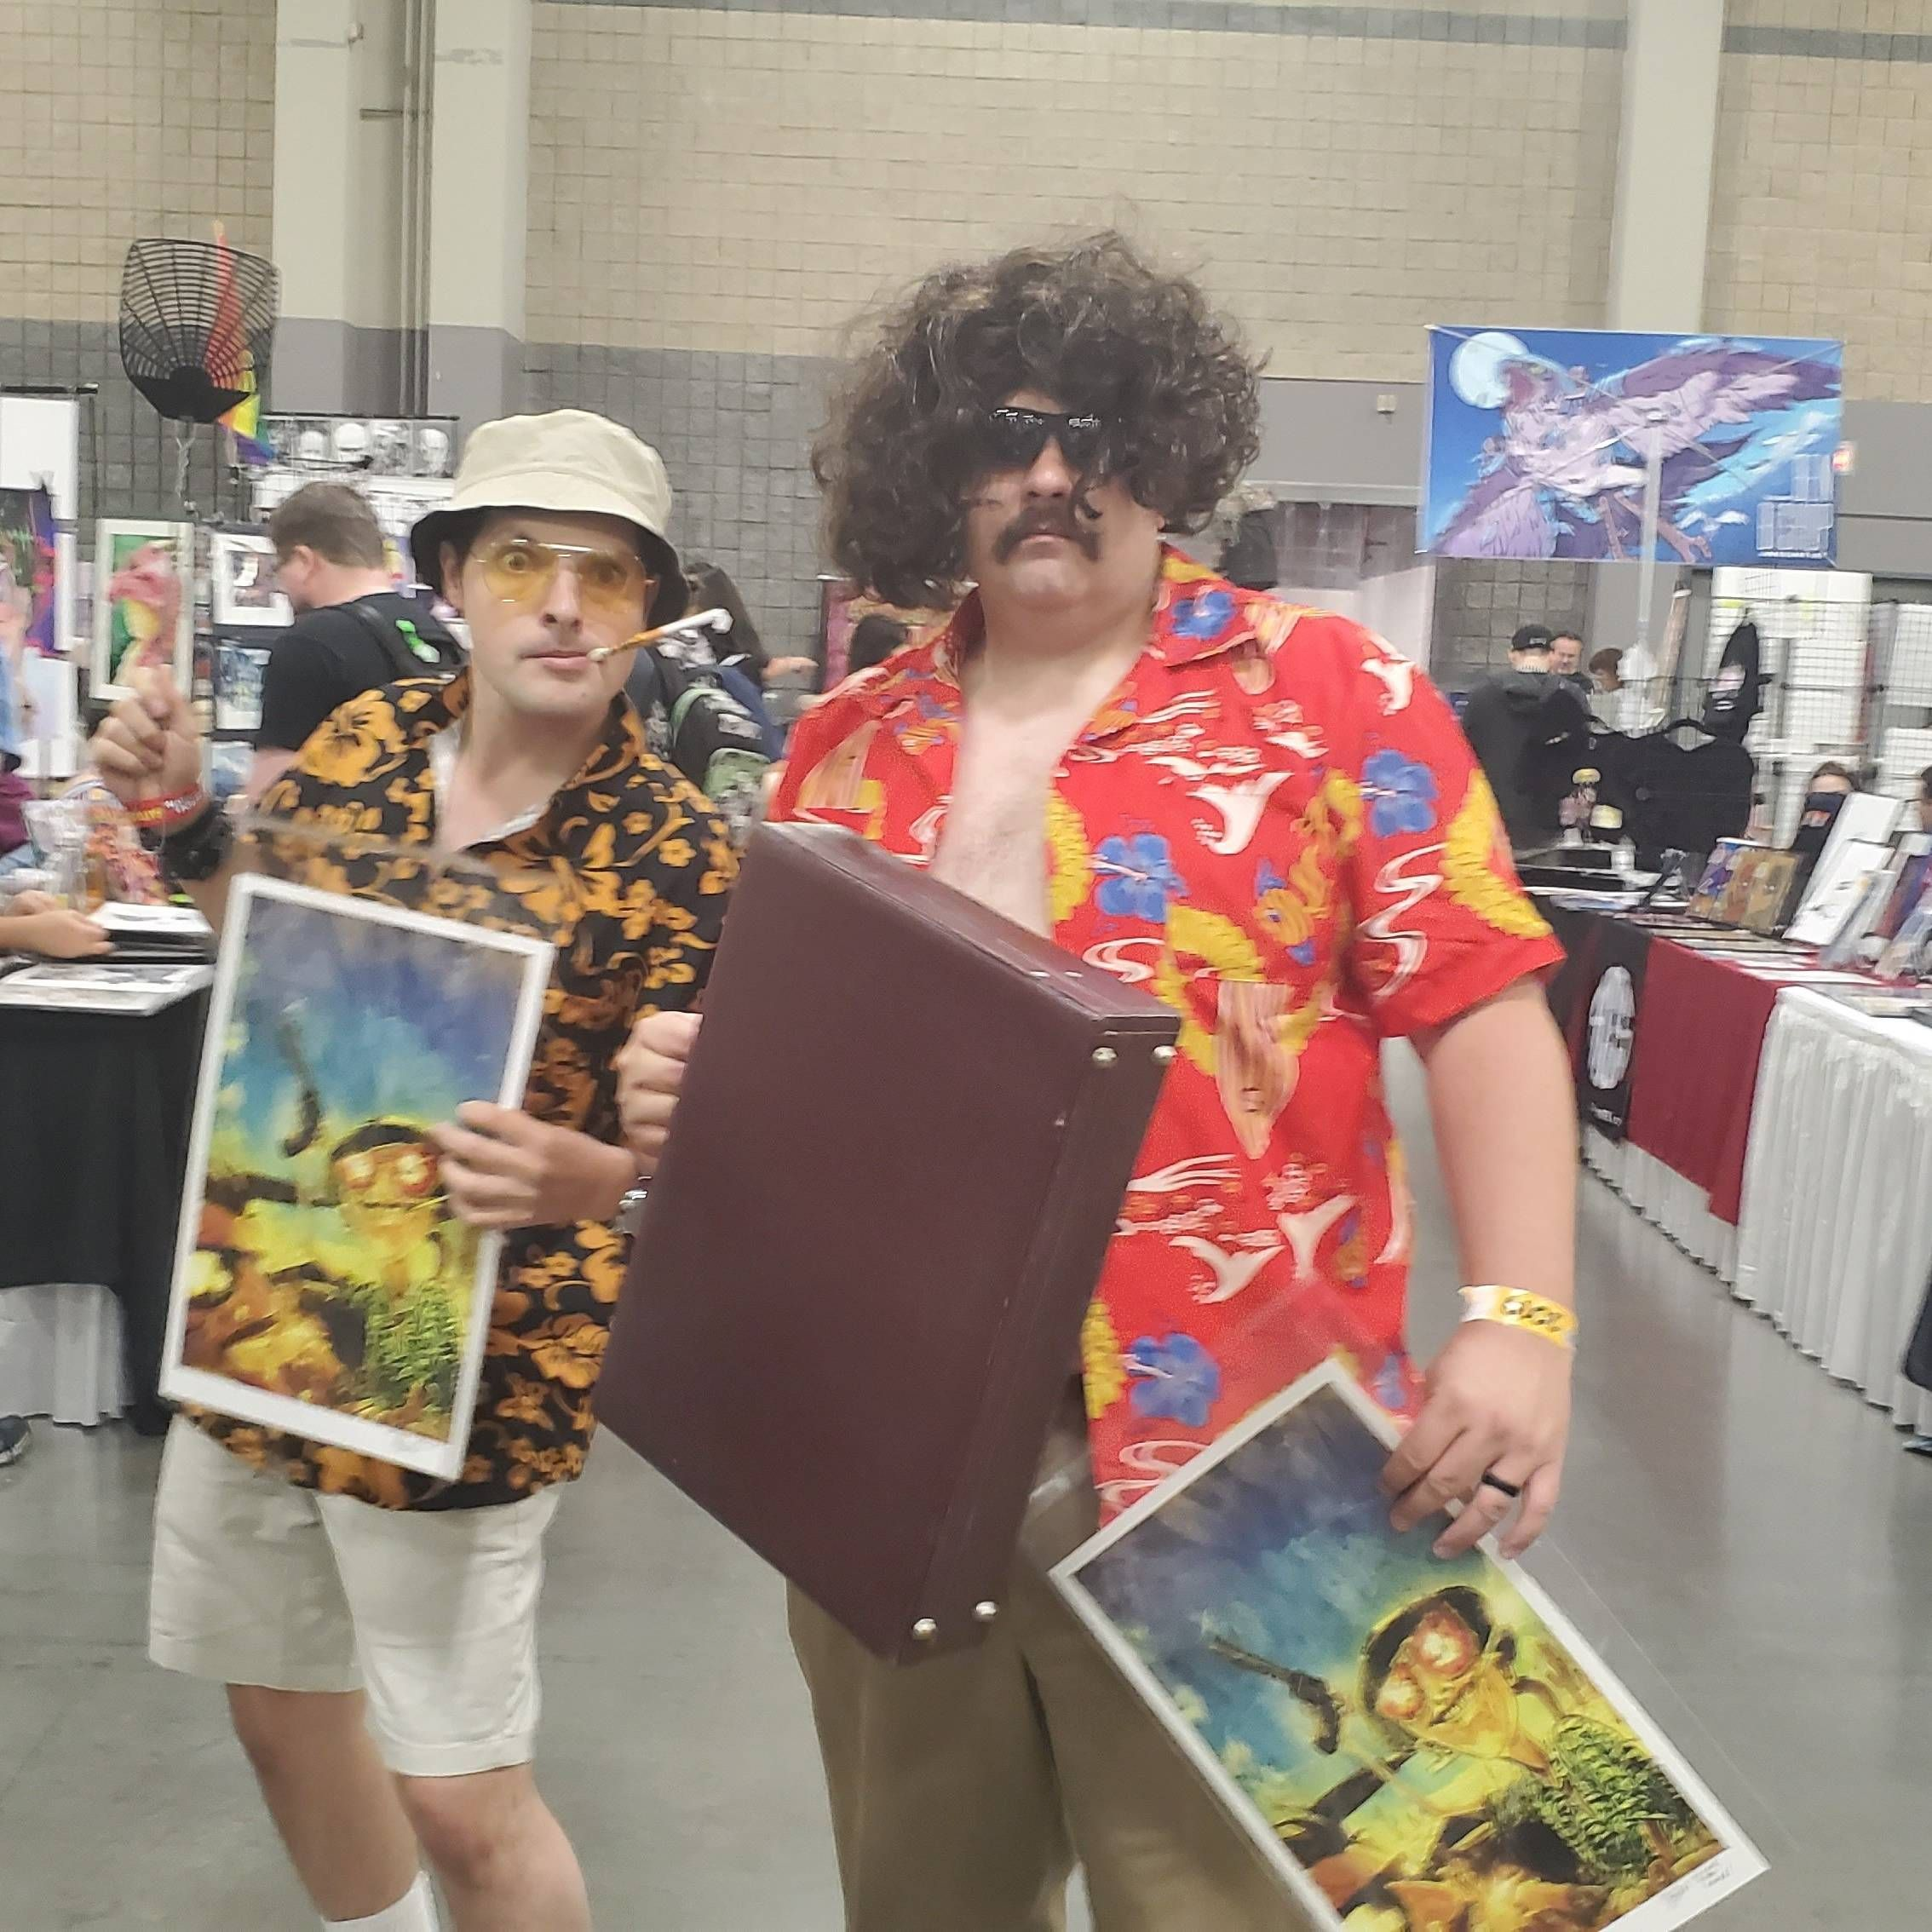 I found the greatest cosplay ever at Heroes Con